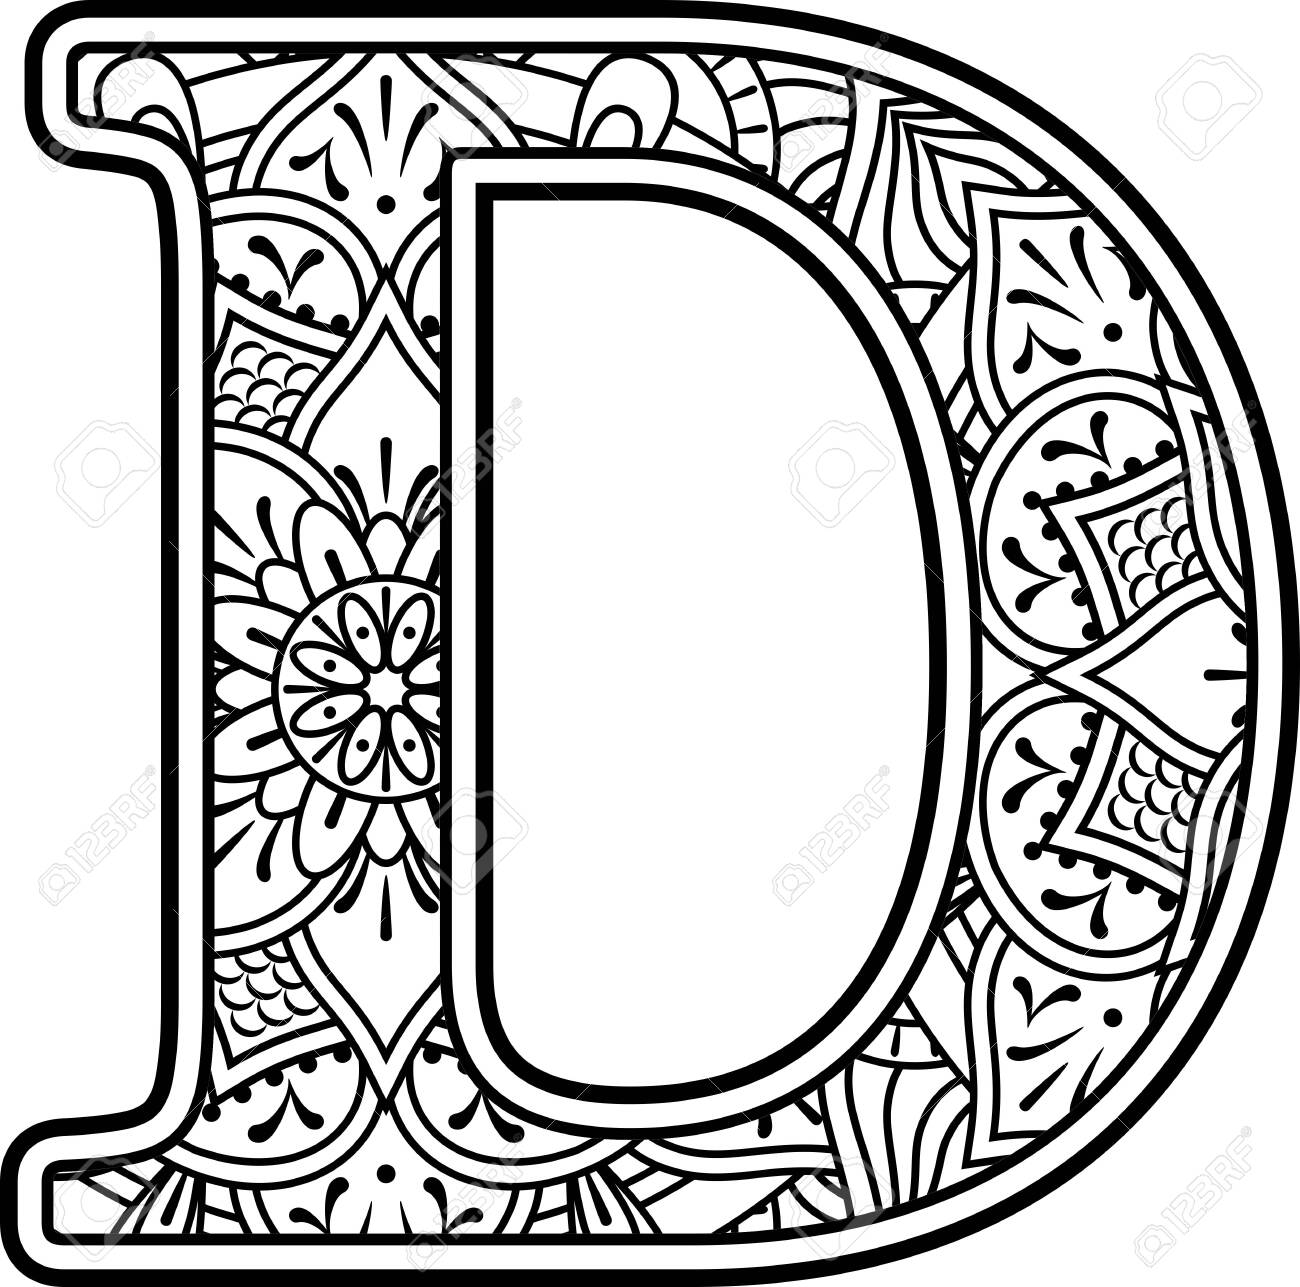 initial d in black and white with doodle ornaments and design elements from mandala art style for coloring. Isolated on white background - 131793542